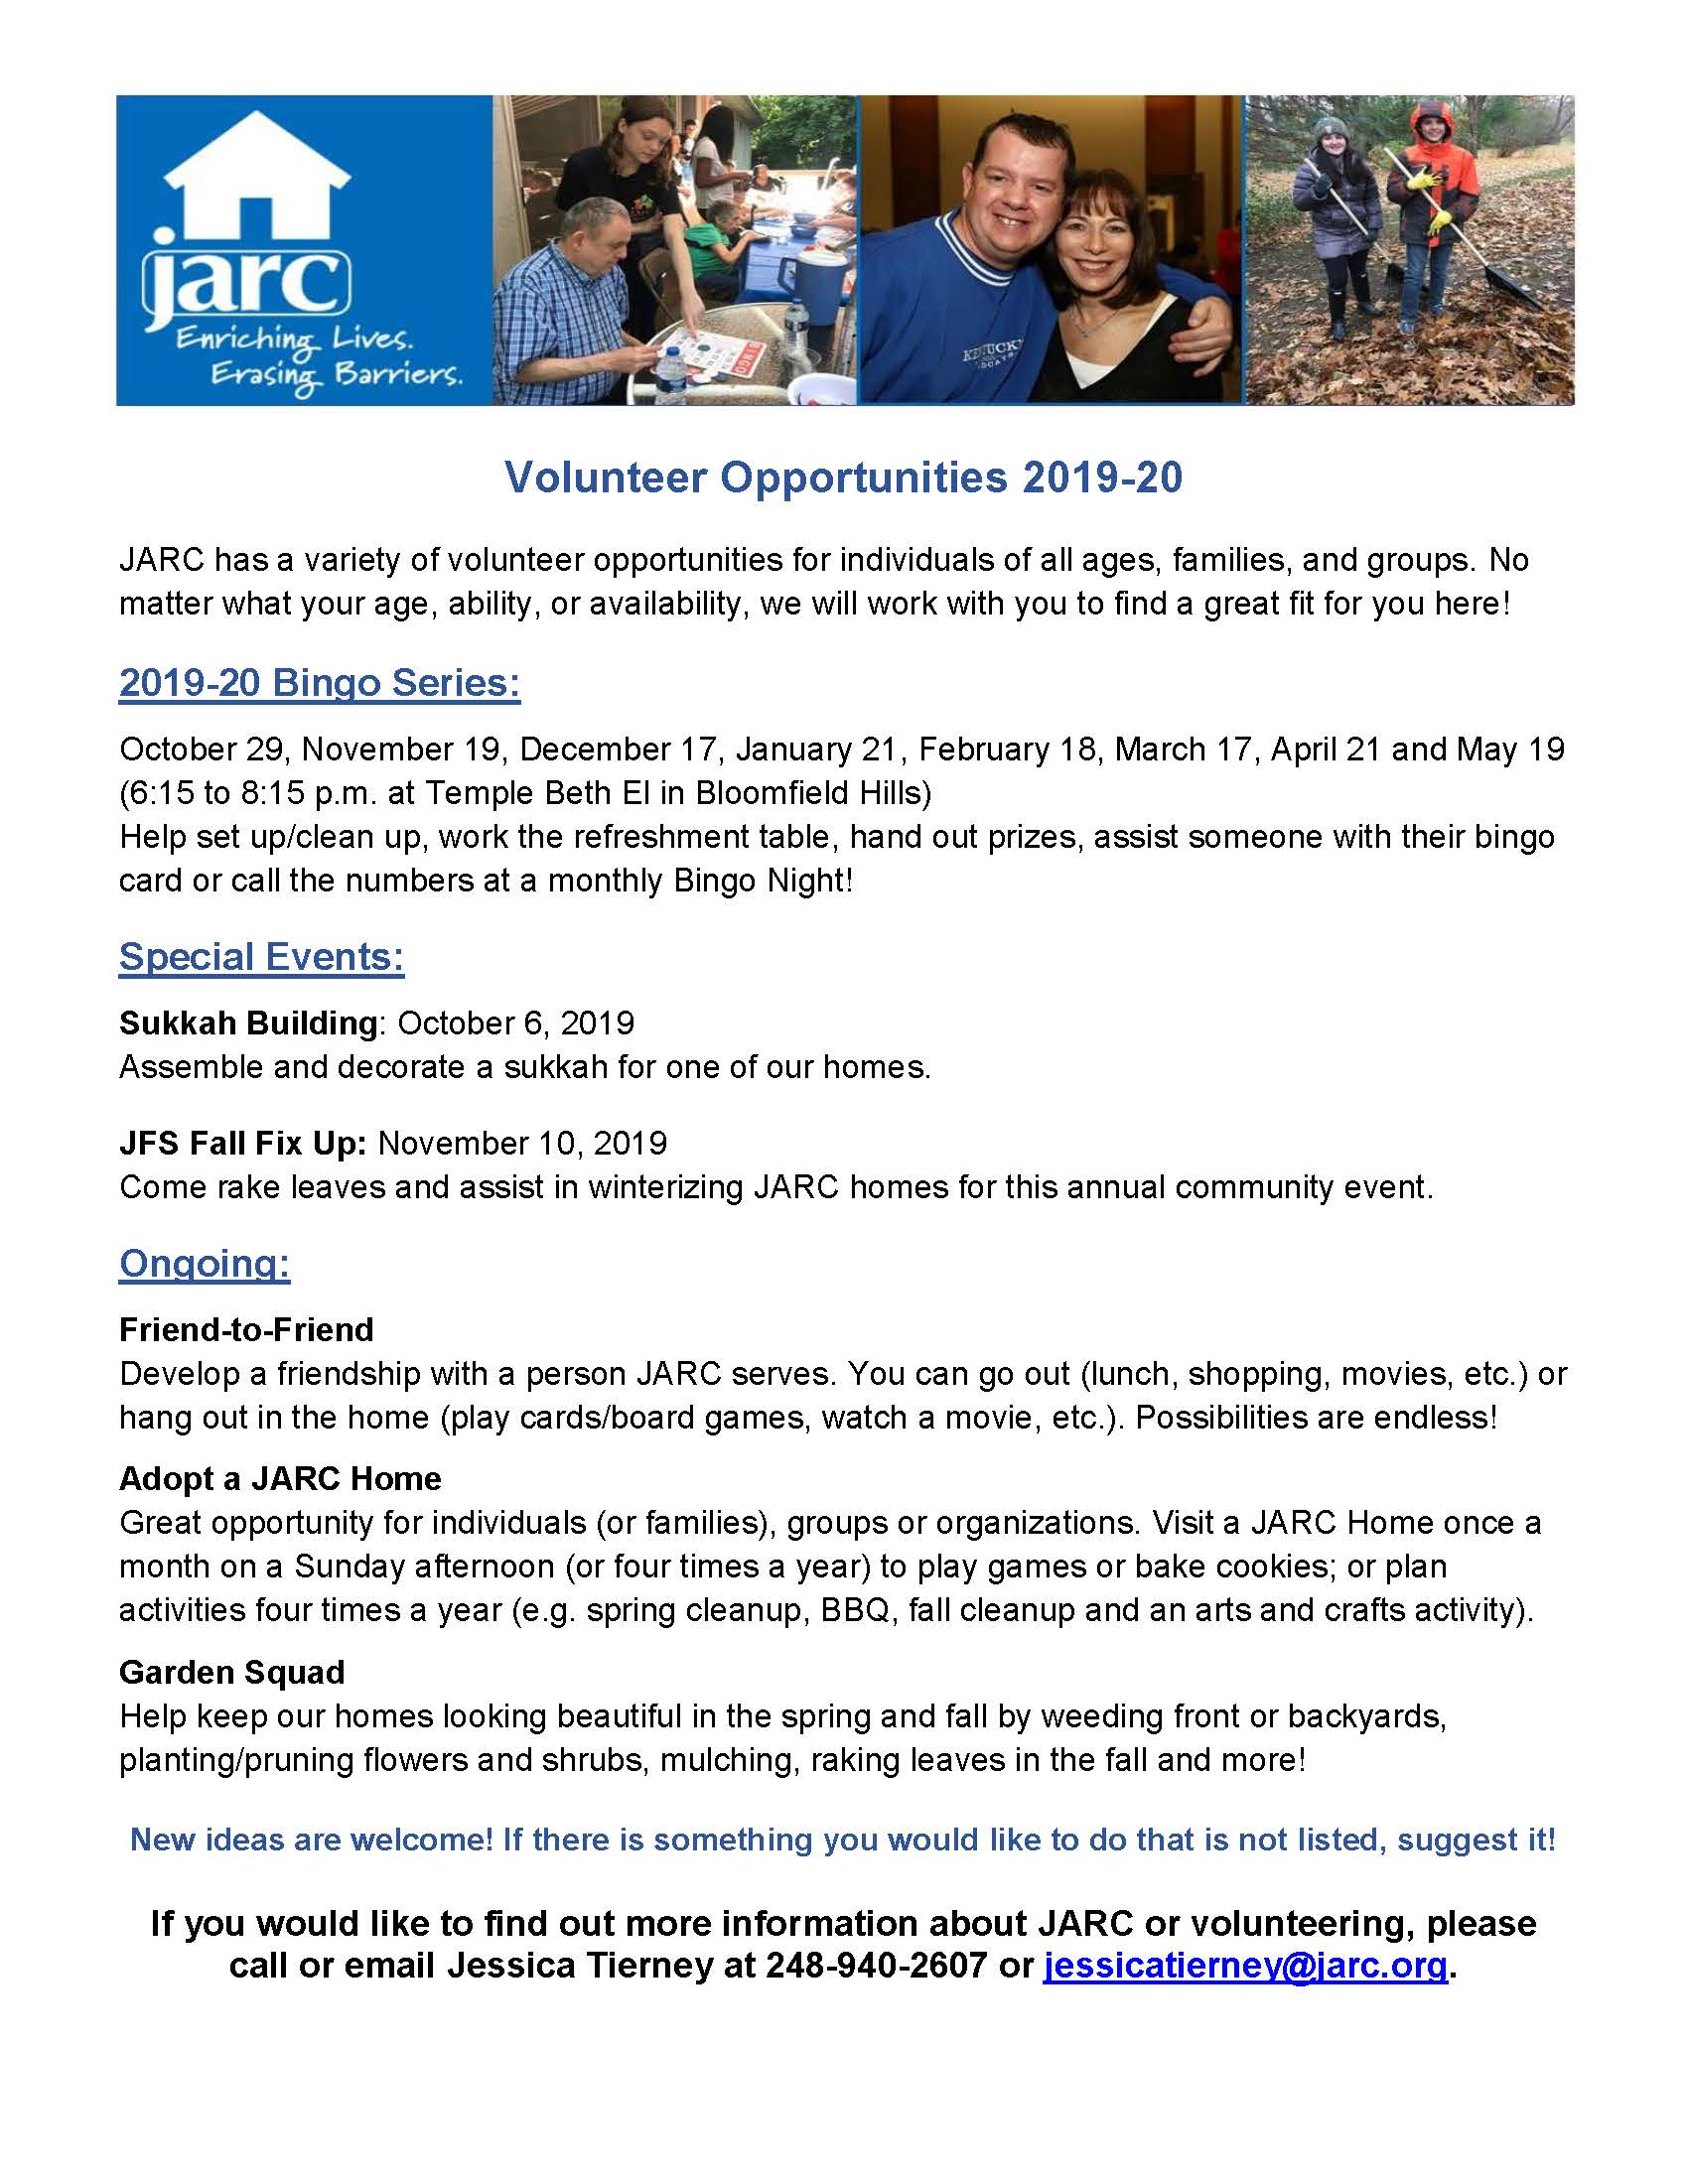 JARC Volunteer Opportunities 2019 (5).jpg